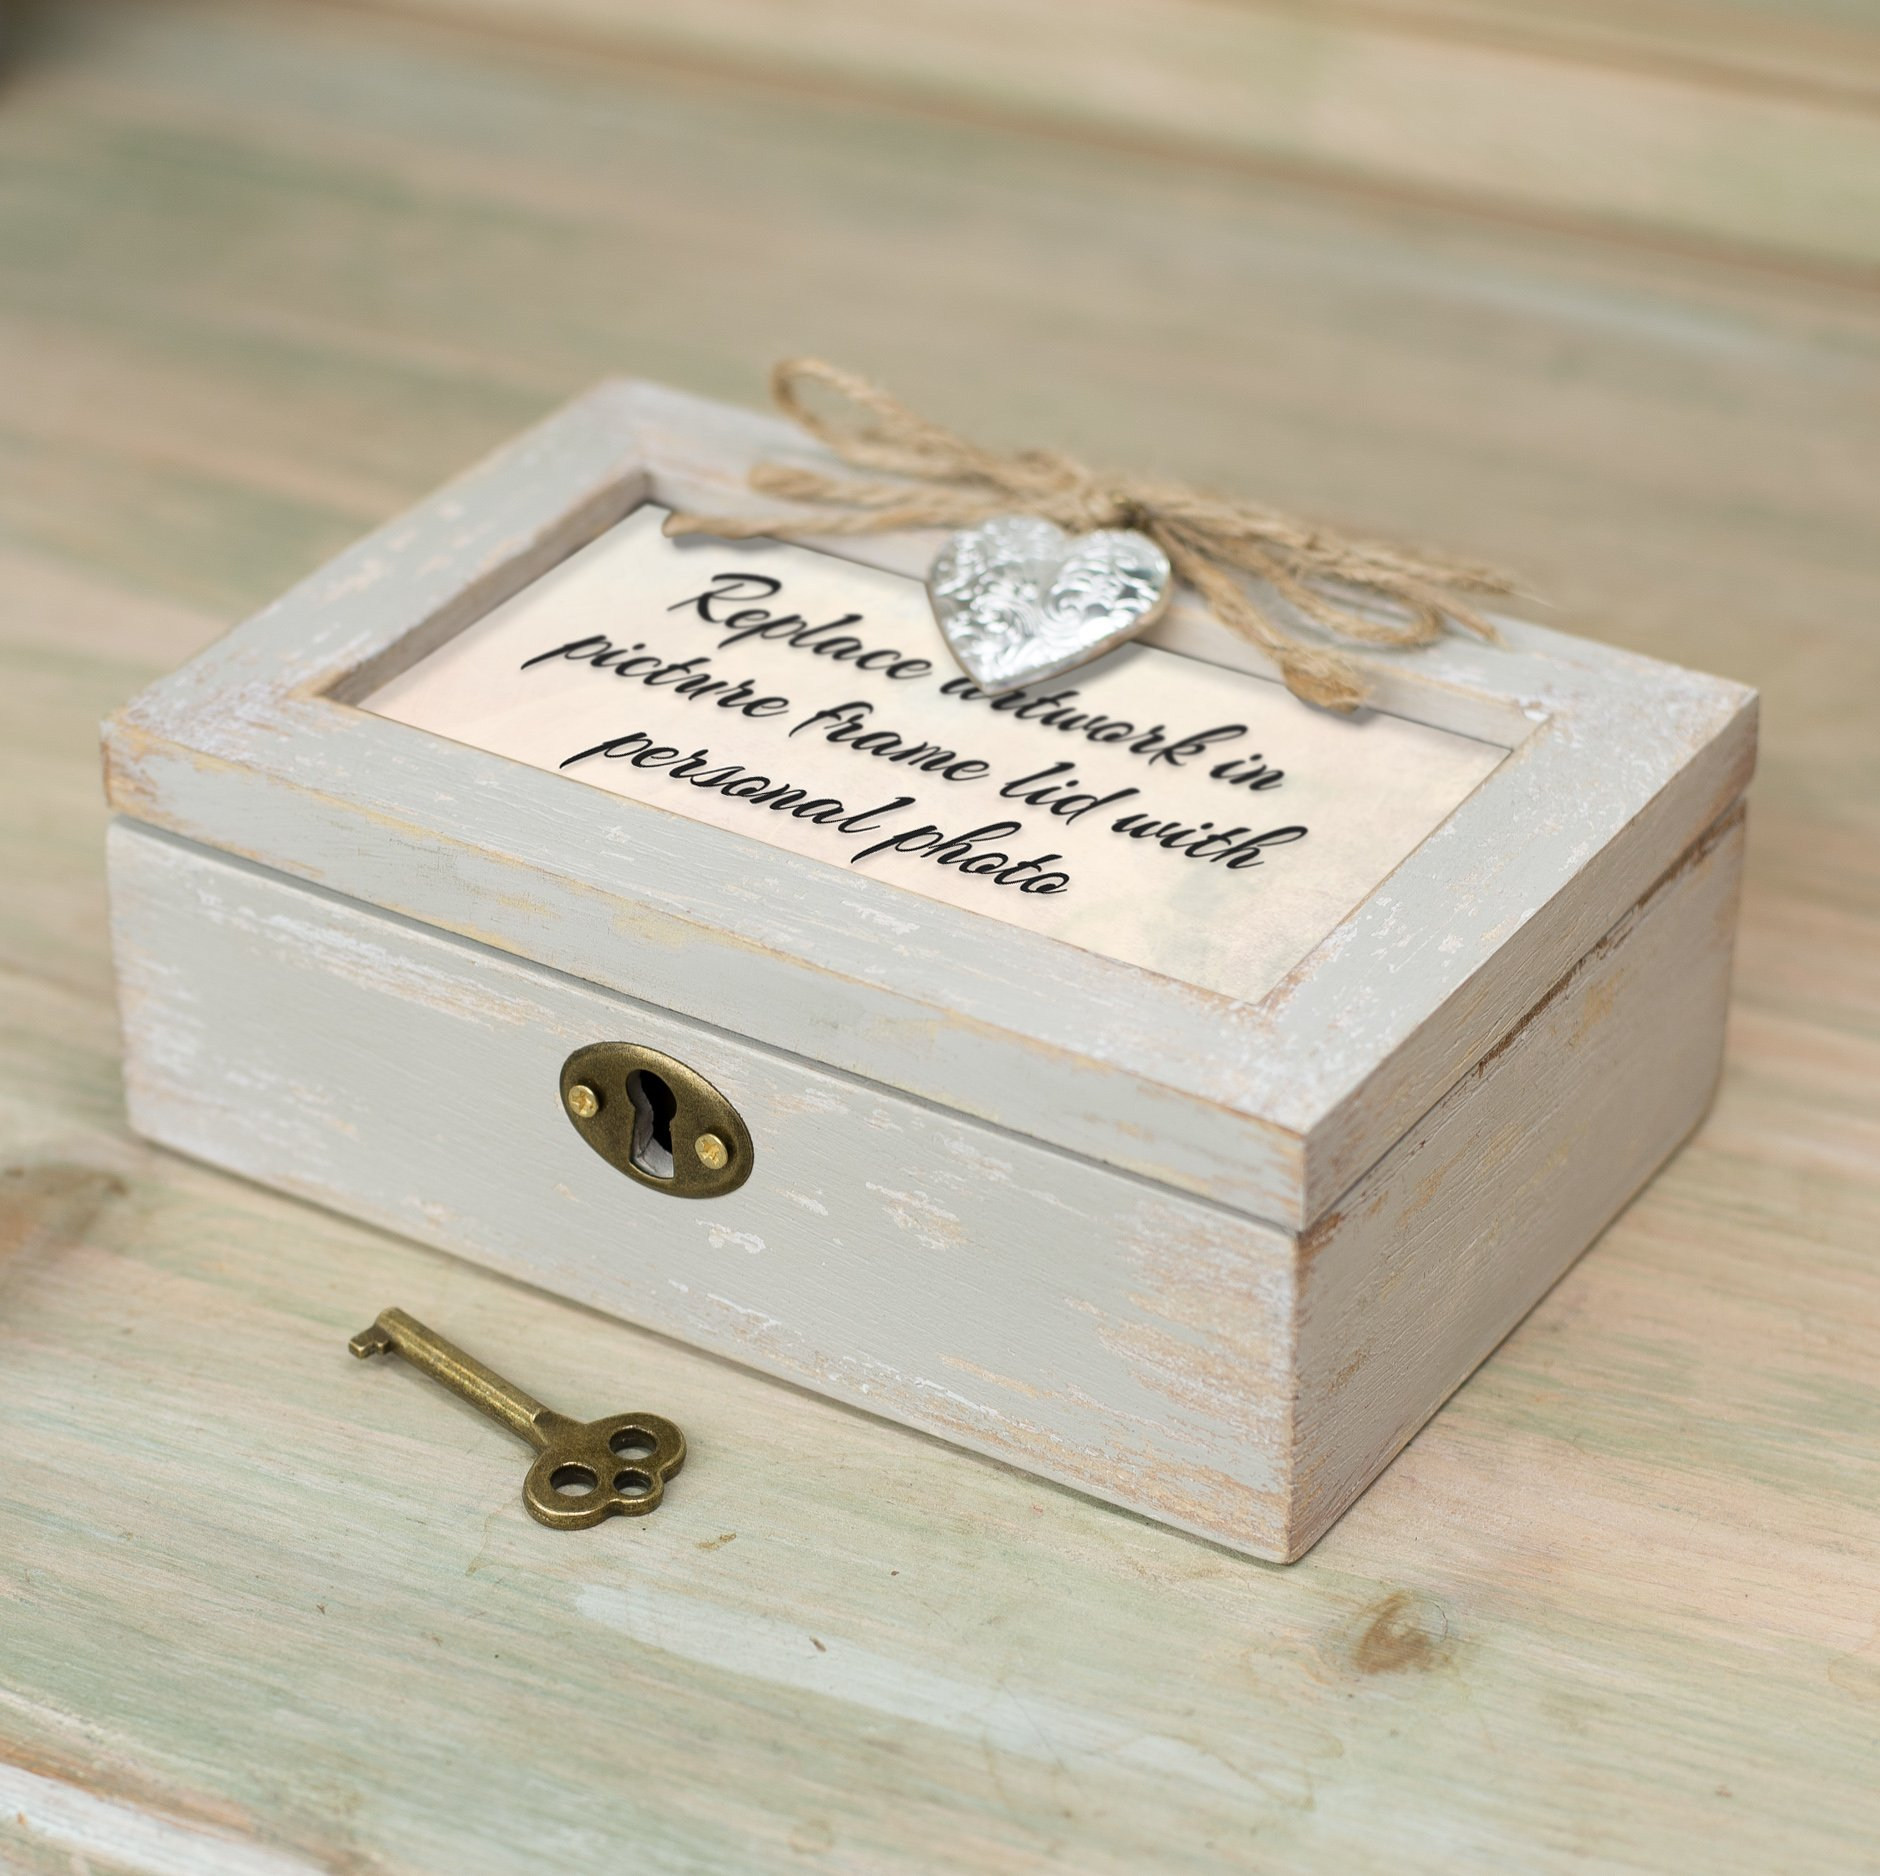 Mom Grateful for Love Distressed Wood Locket Jewelry Music Box Plays Tune Wind Beneath My Wings by Cottage Garden (Image #5)